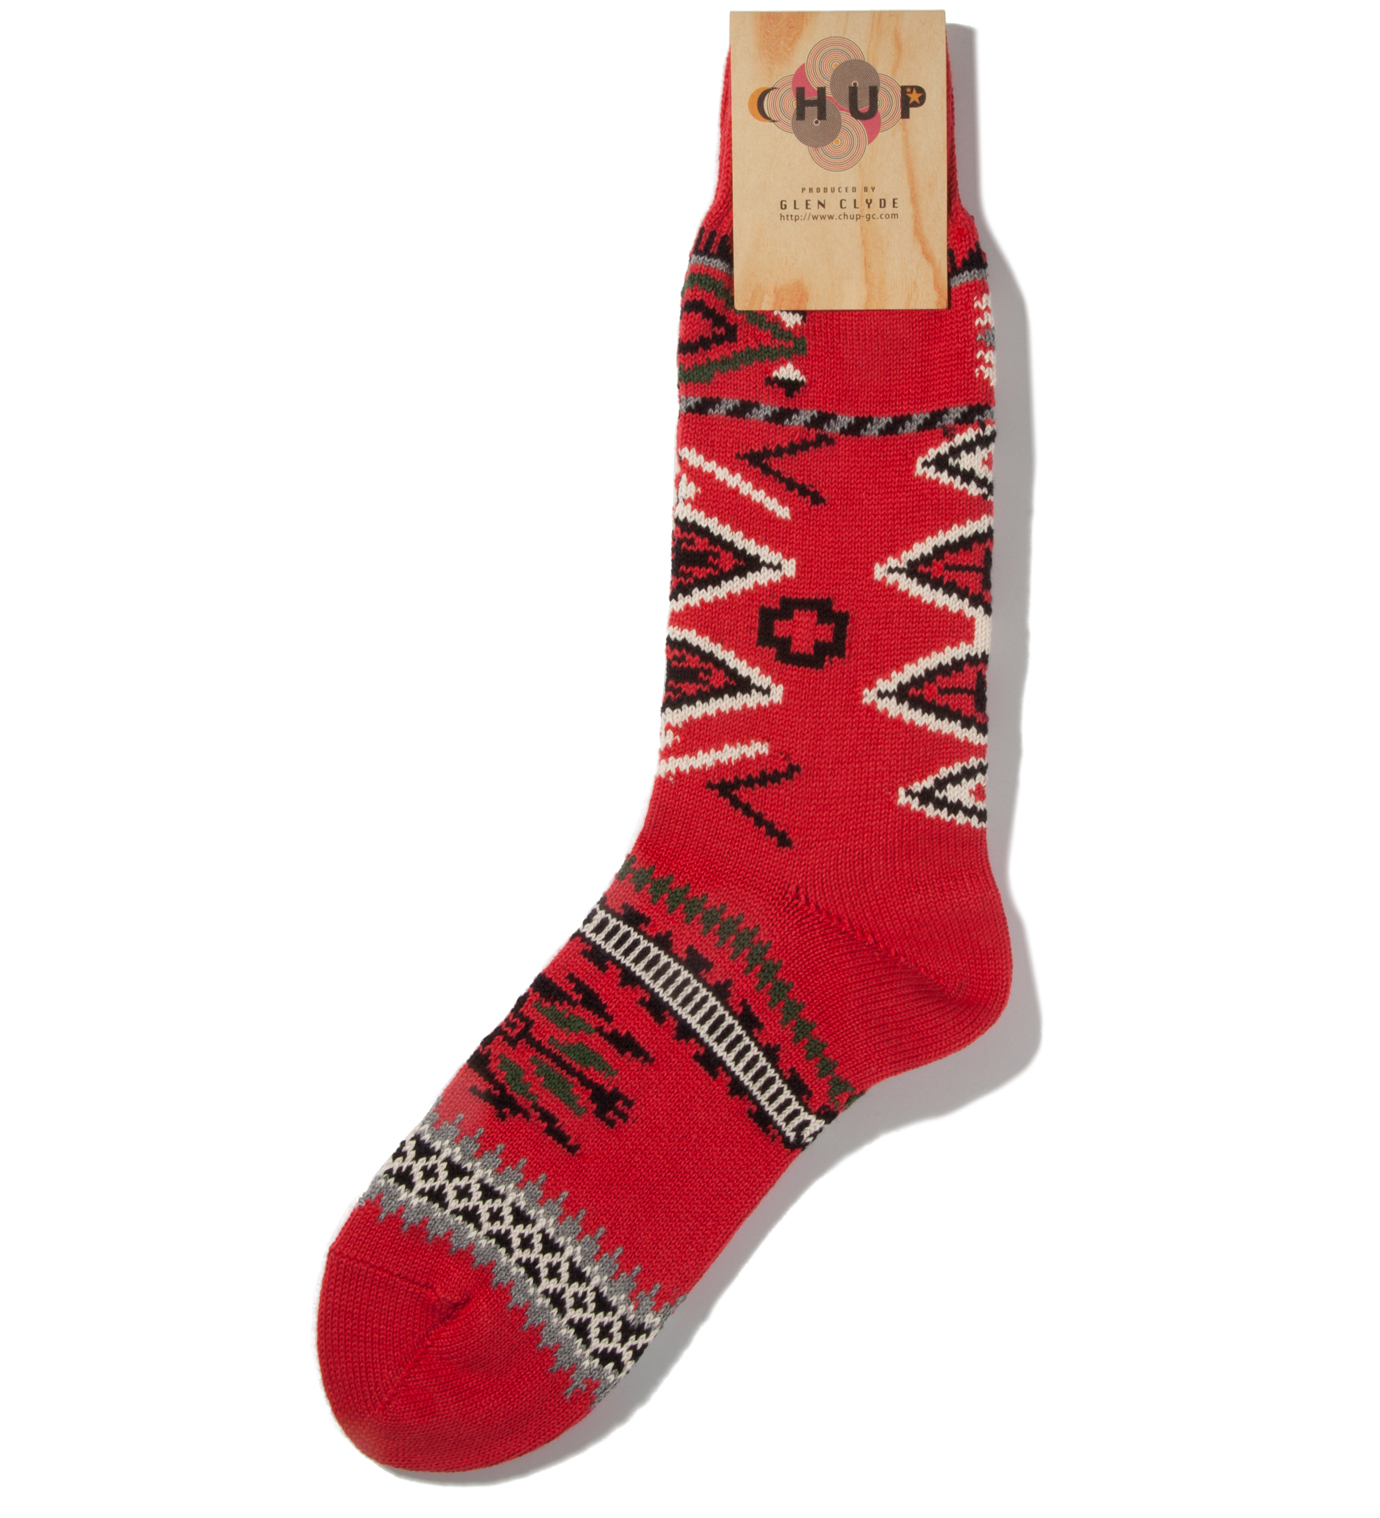 CHUP Red Ganado Socks